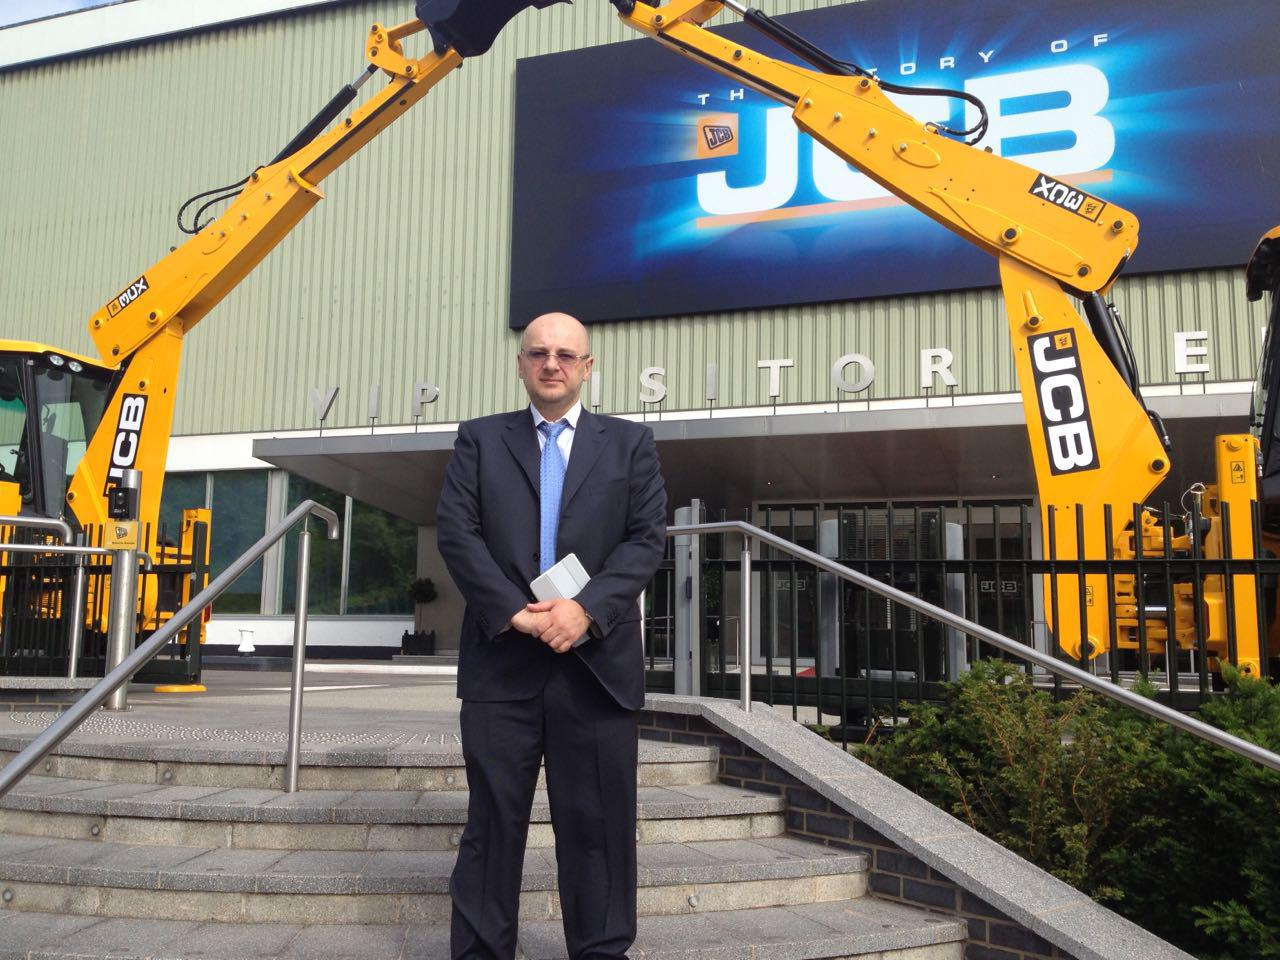 The company's management visit to JCB factory - manufacturer of backhoe loaders in Rochester, UK